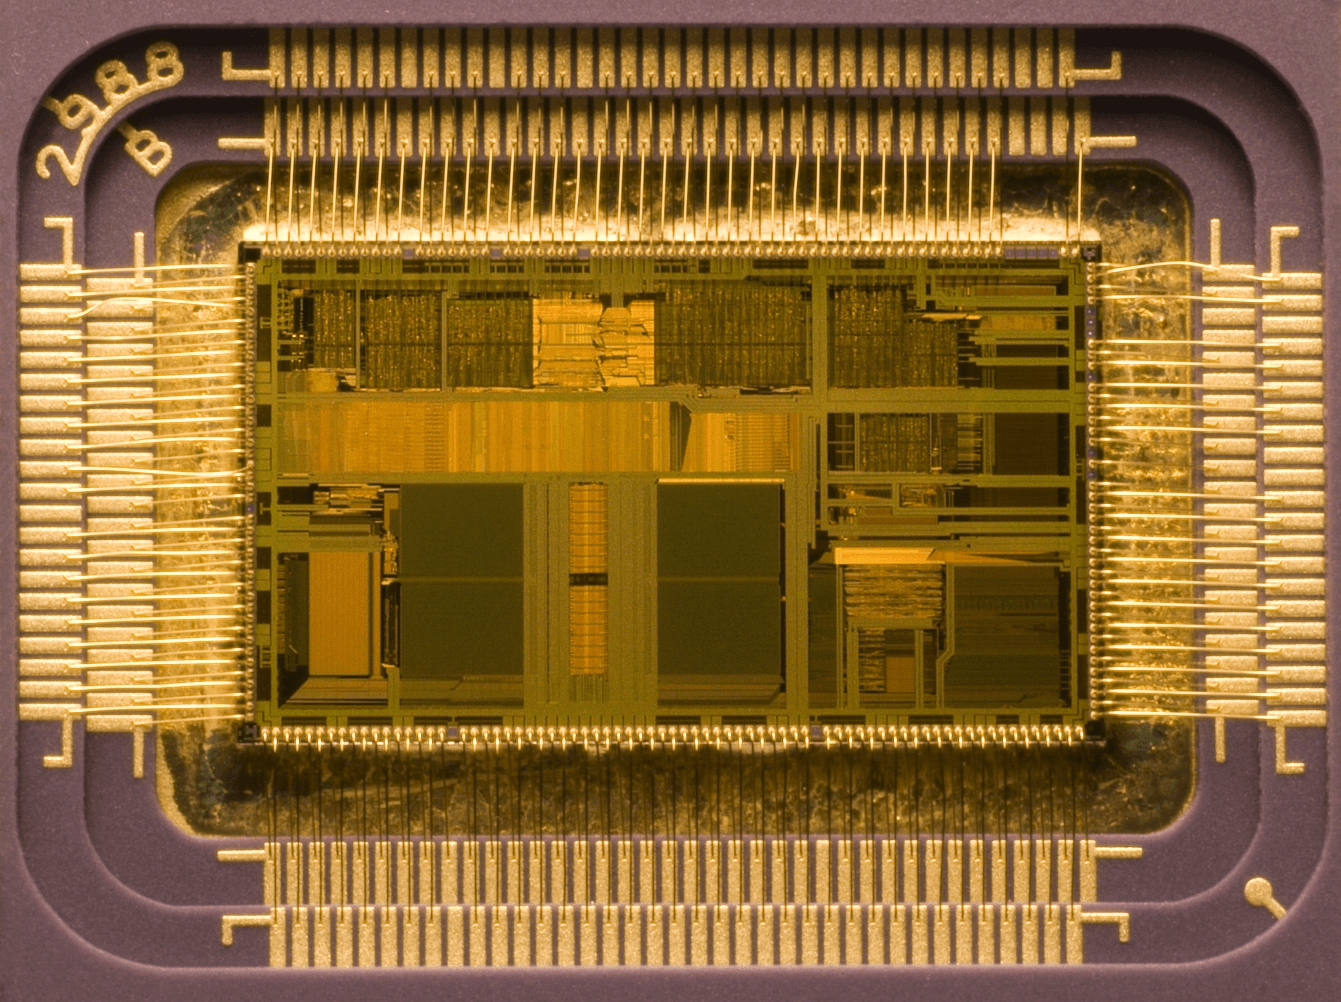 Fieldbus communications computer board